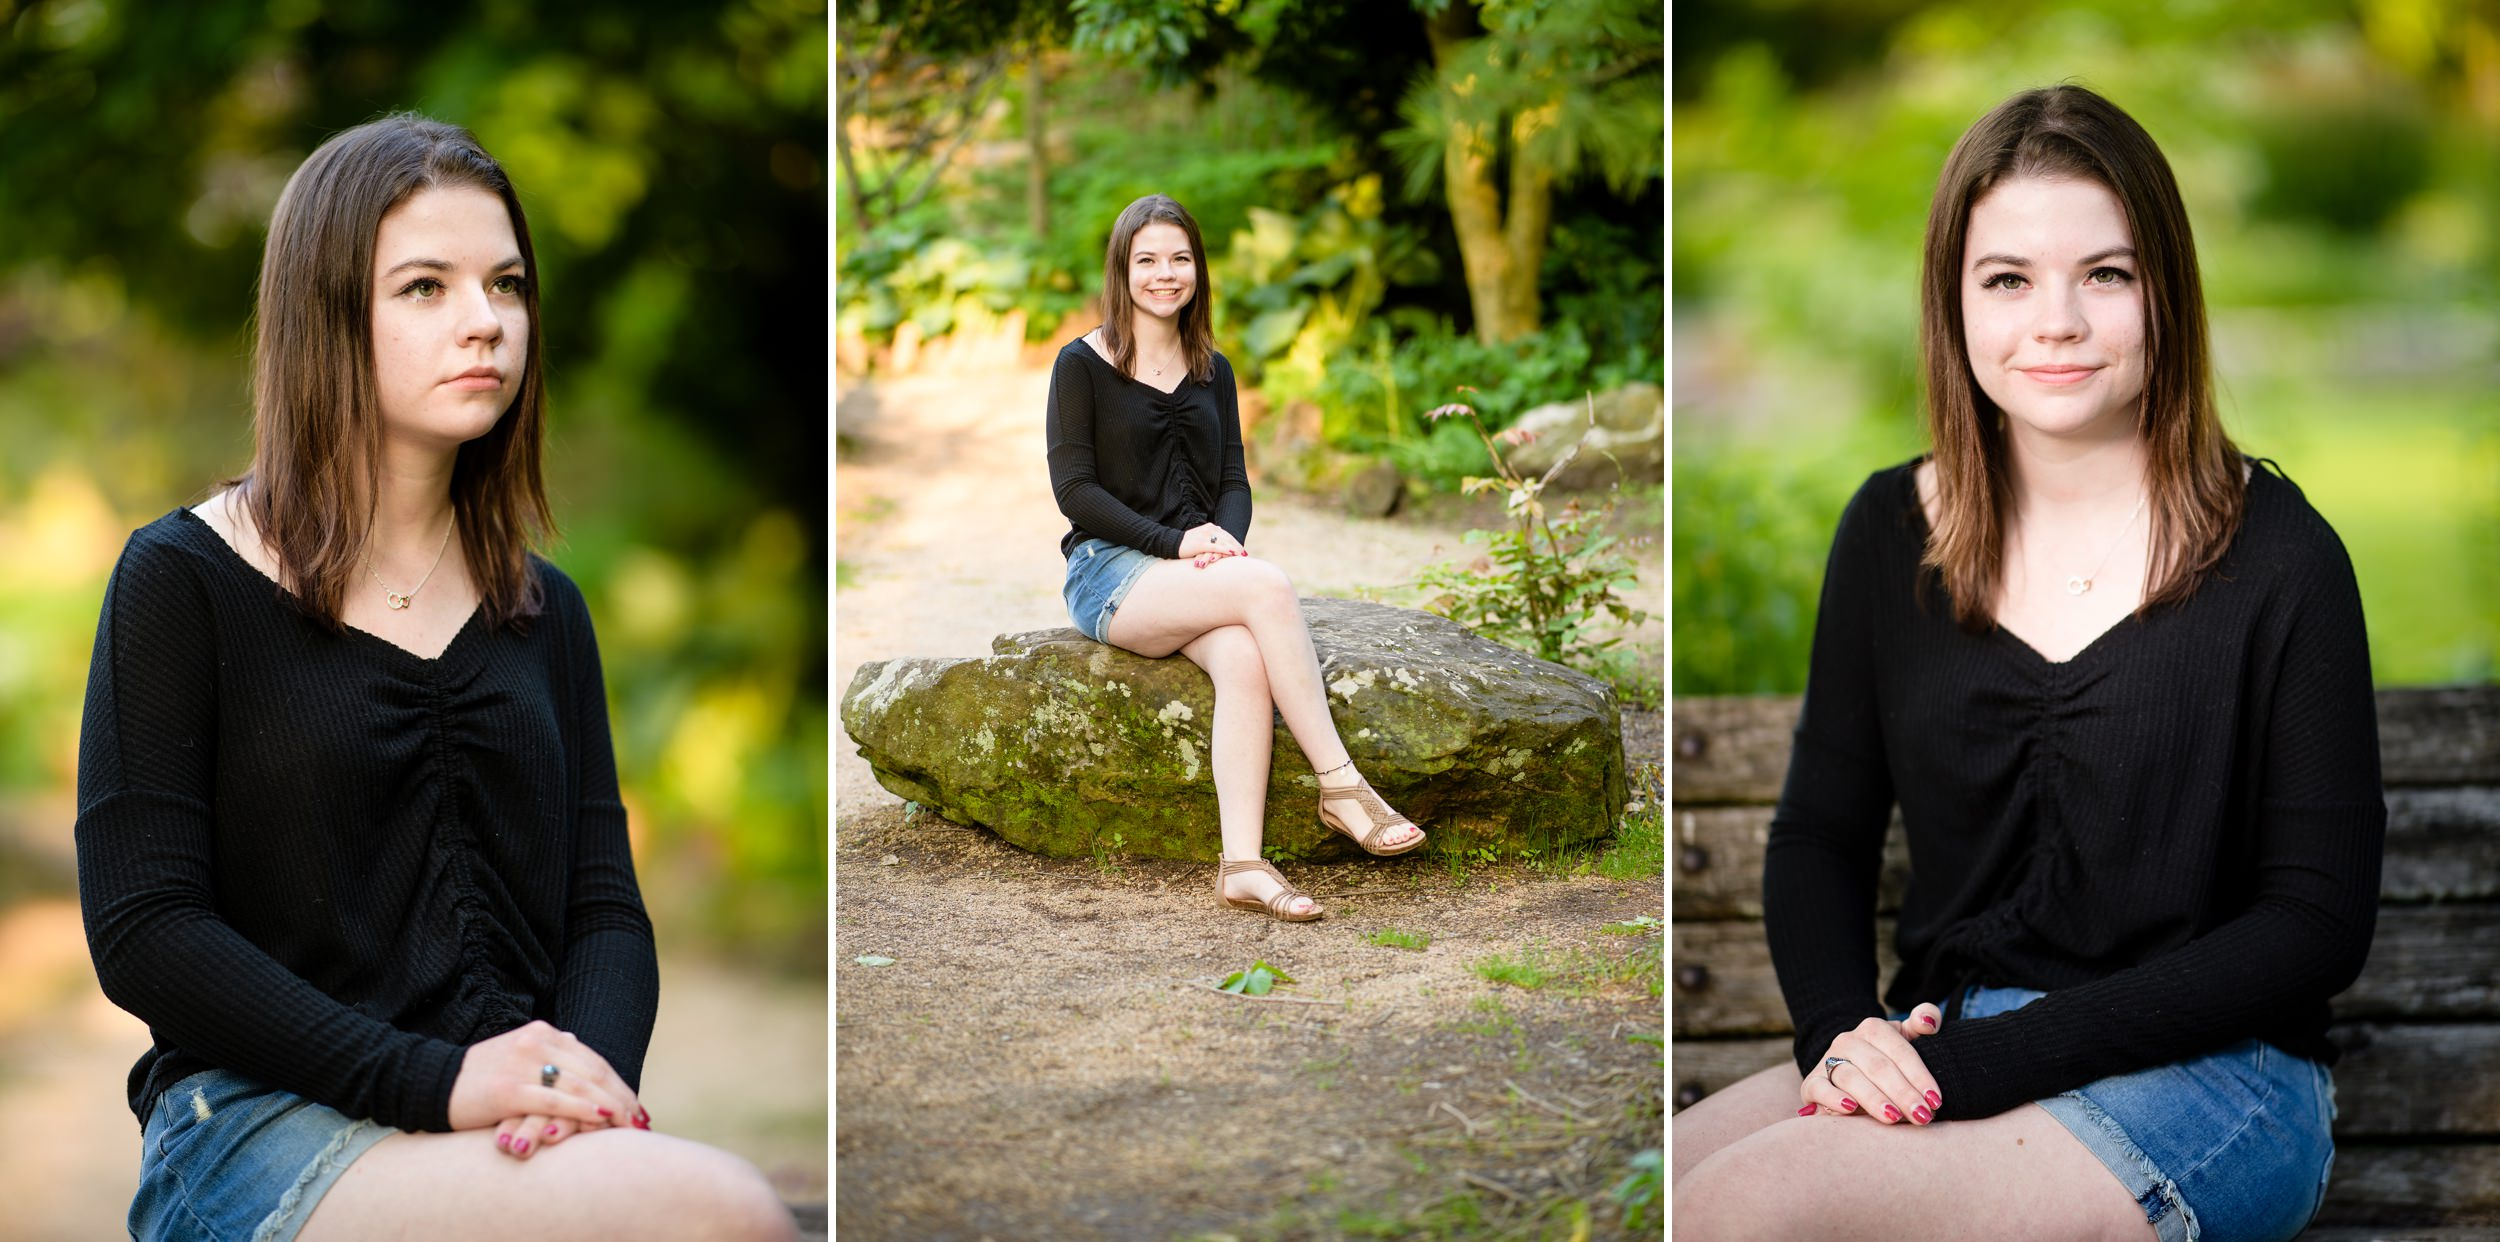 Senior girl portraits with a nature theme.